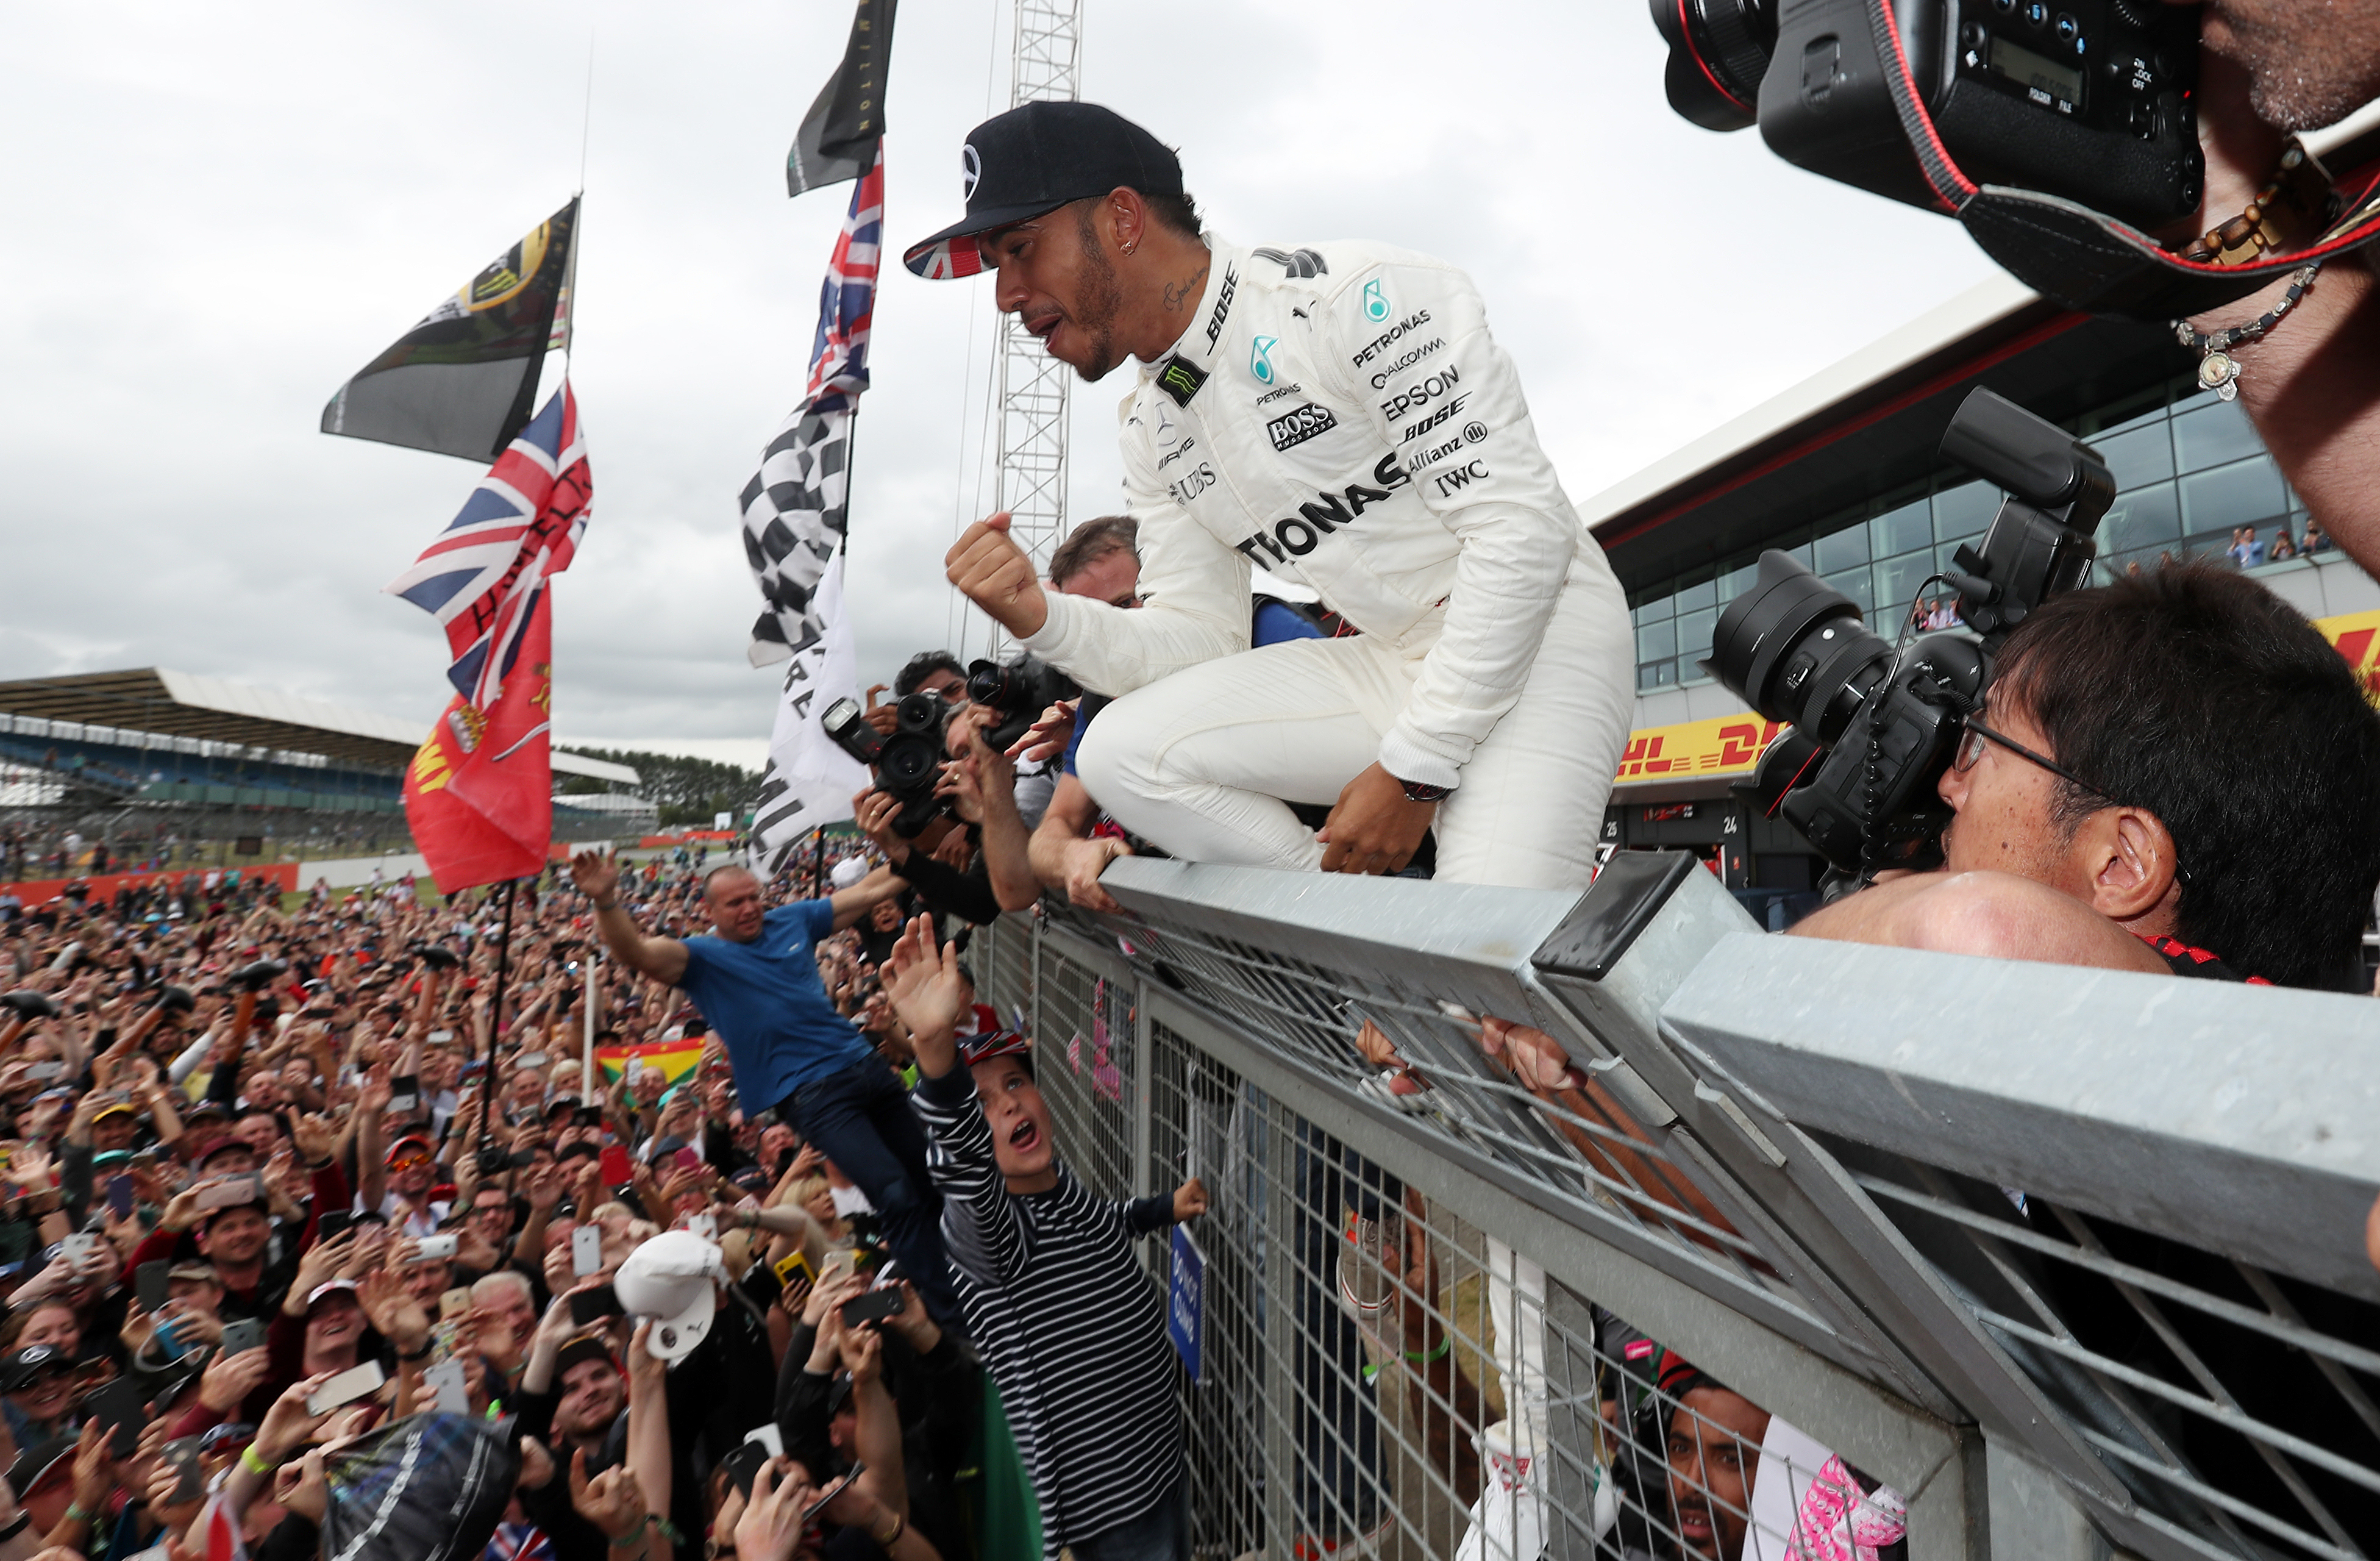 Mercedes Lewis Hamilton celebrates his victory during the 2017 British Grand Prix at Silverstone Circuit, Towcester.